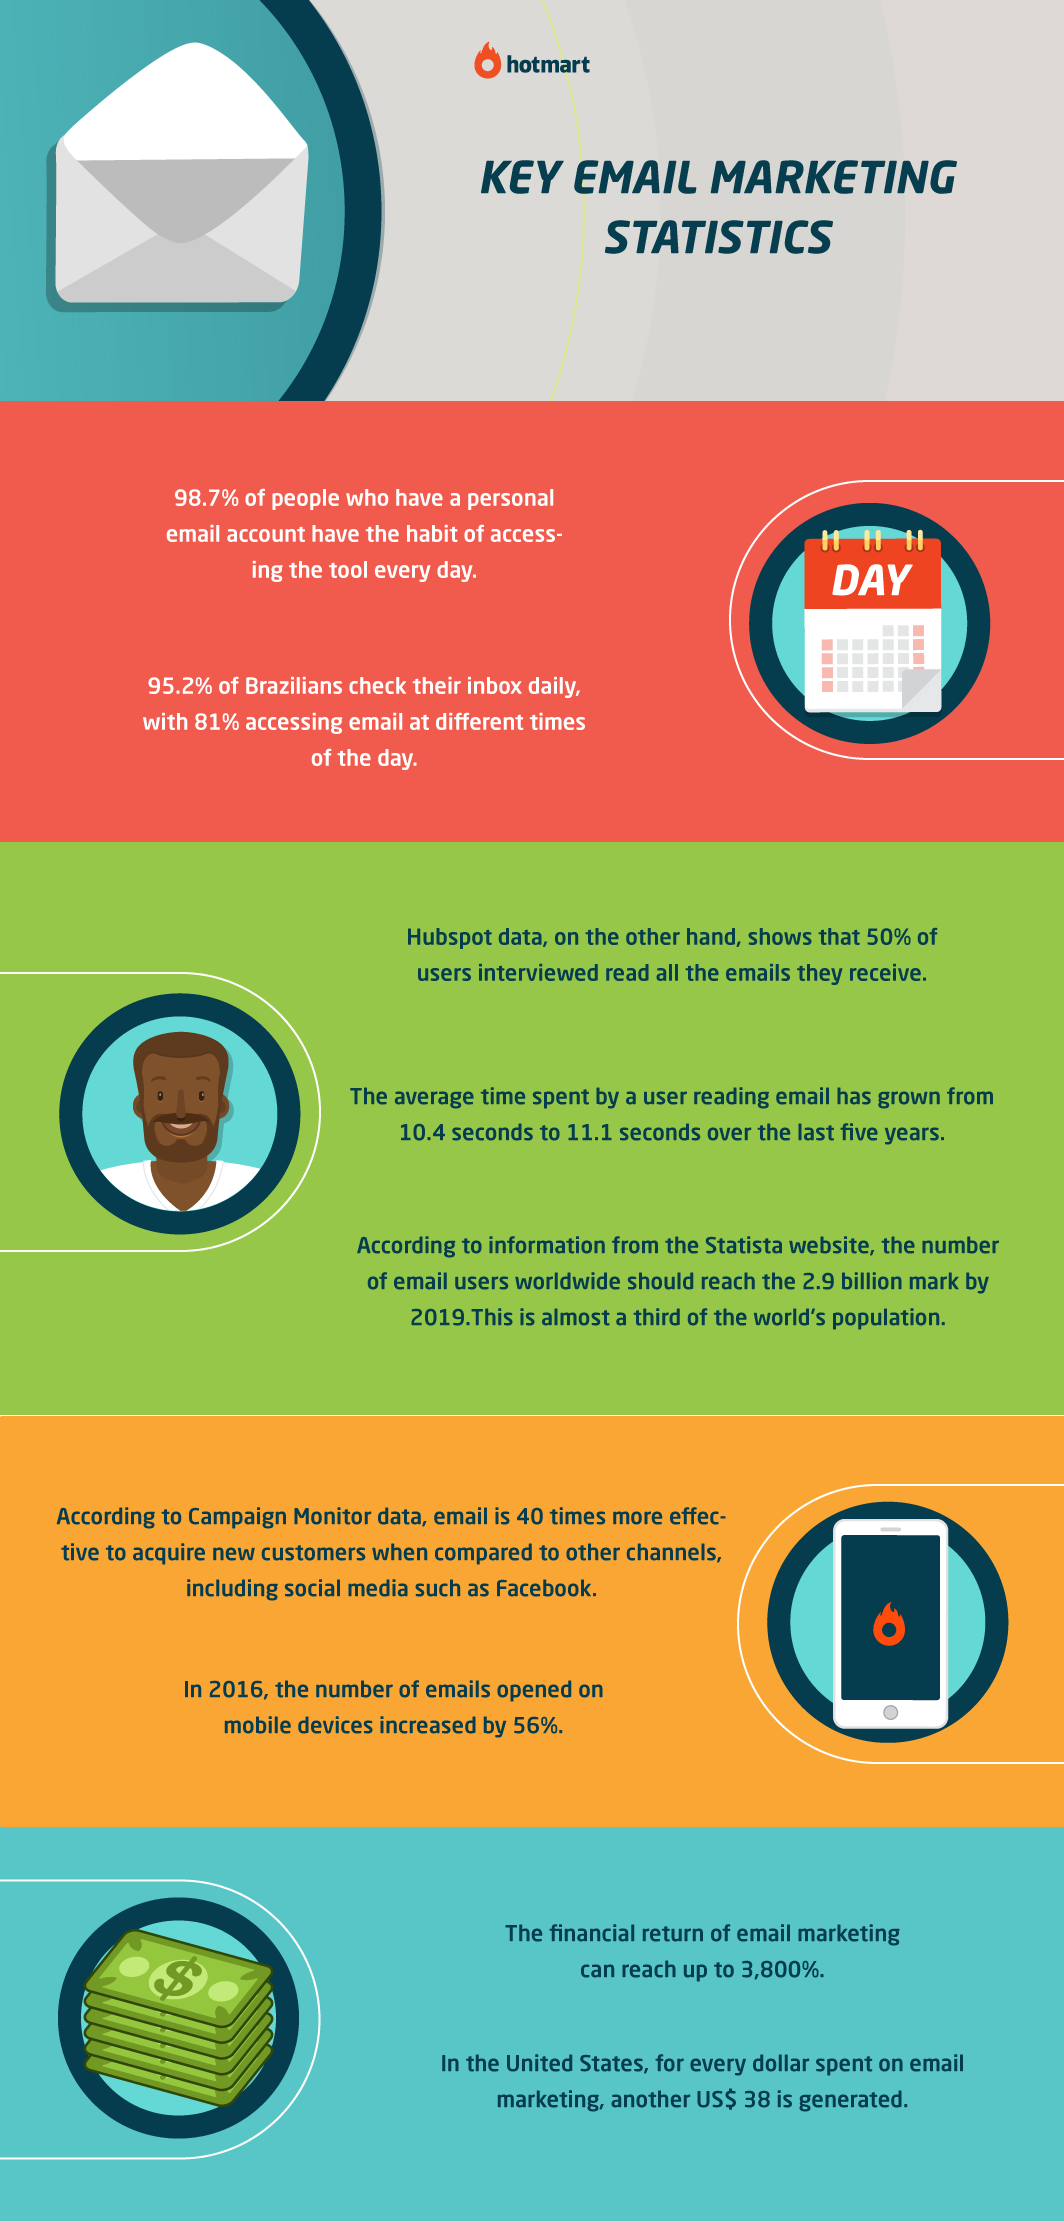 Infographic about the KEY eMAIL MARKETING STATISTICS